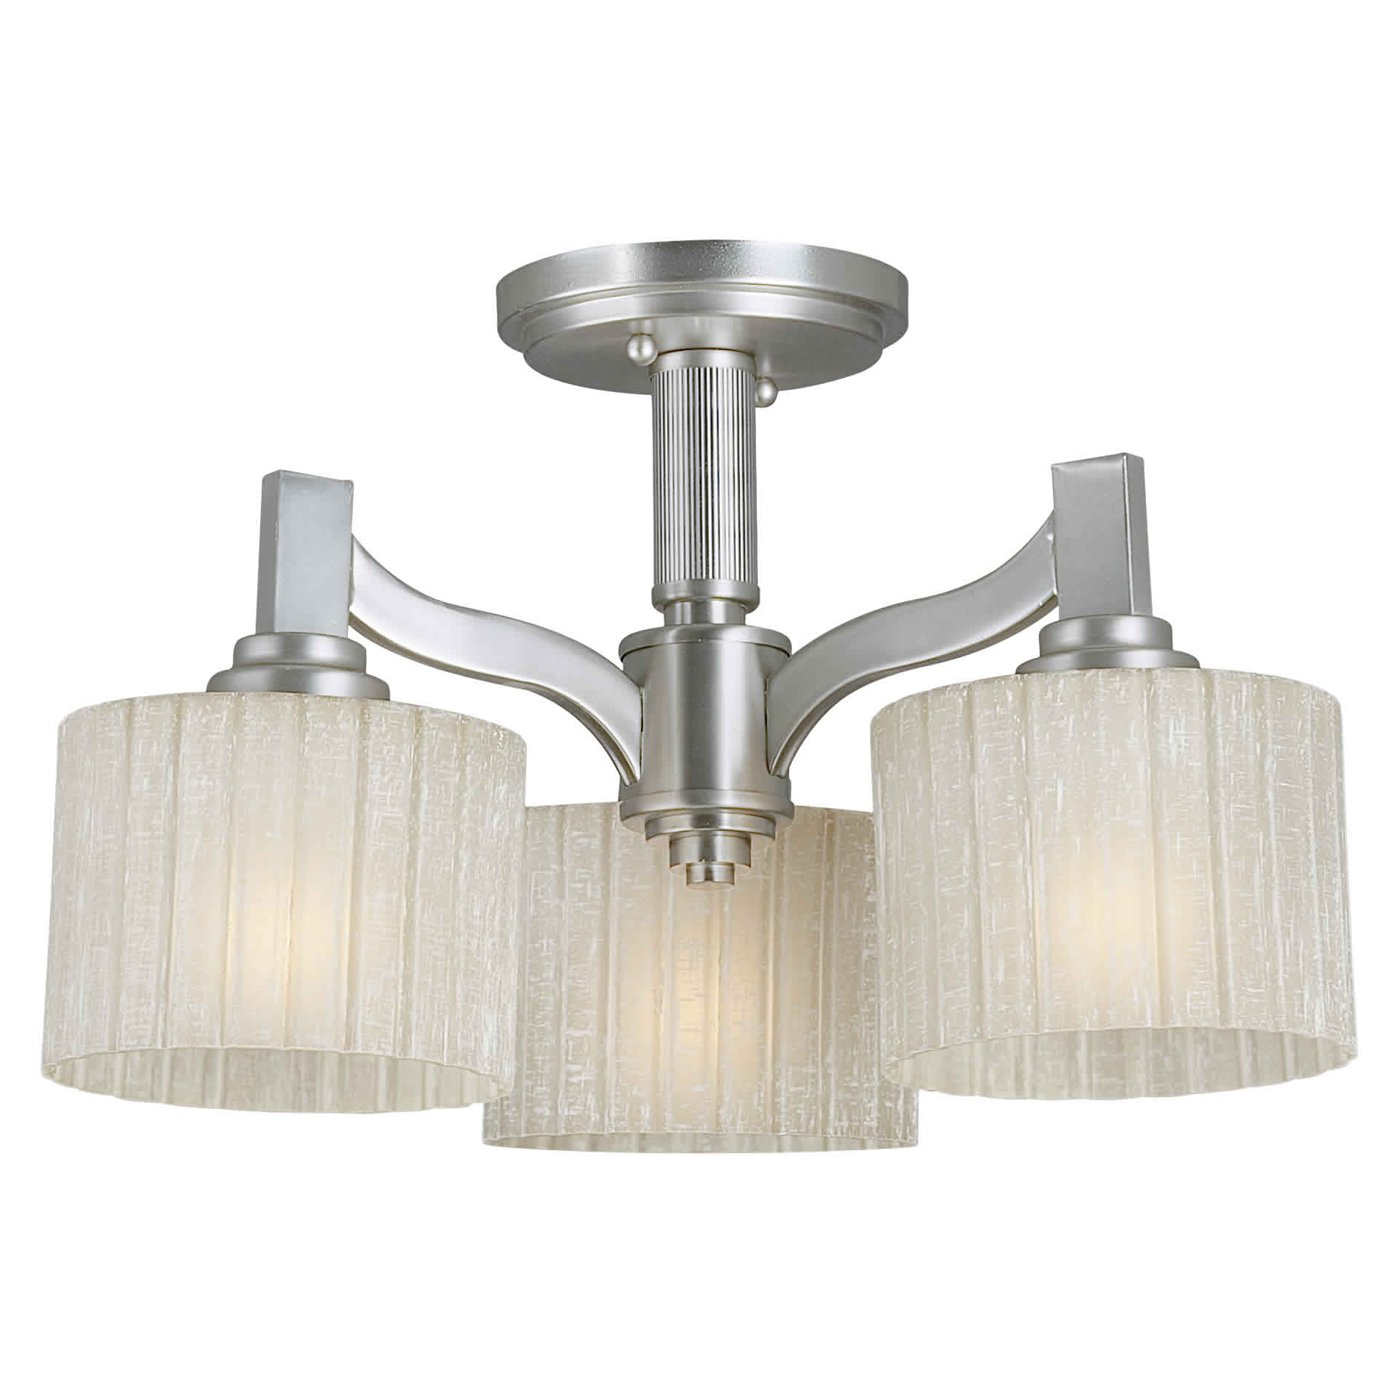 Marvellous semi flush ceiling light for home lighting design with brushed nickel semi flush ceiling light